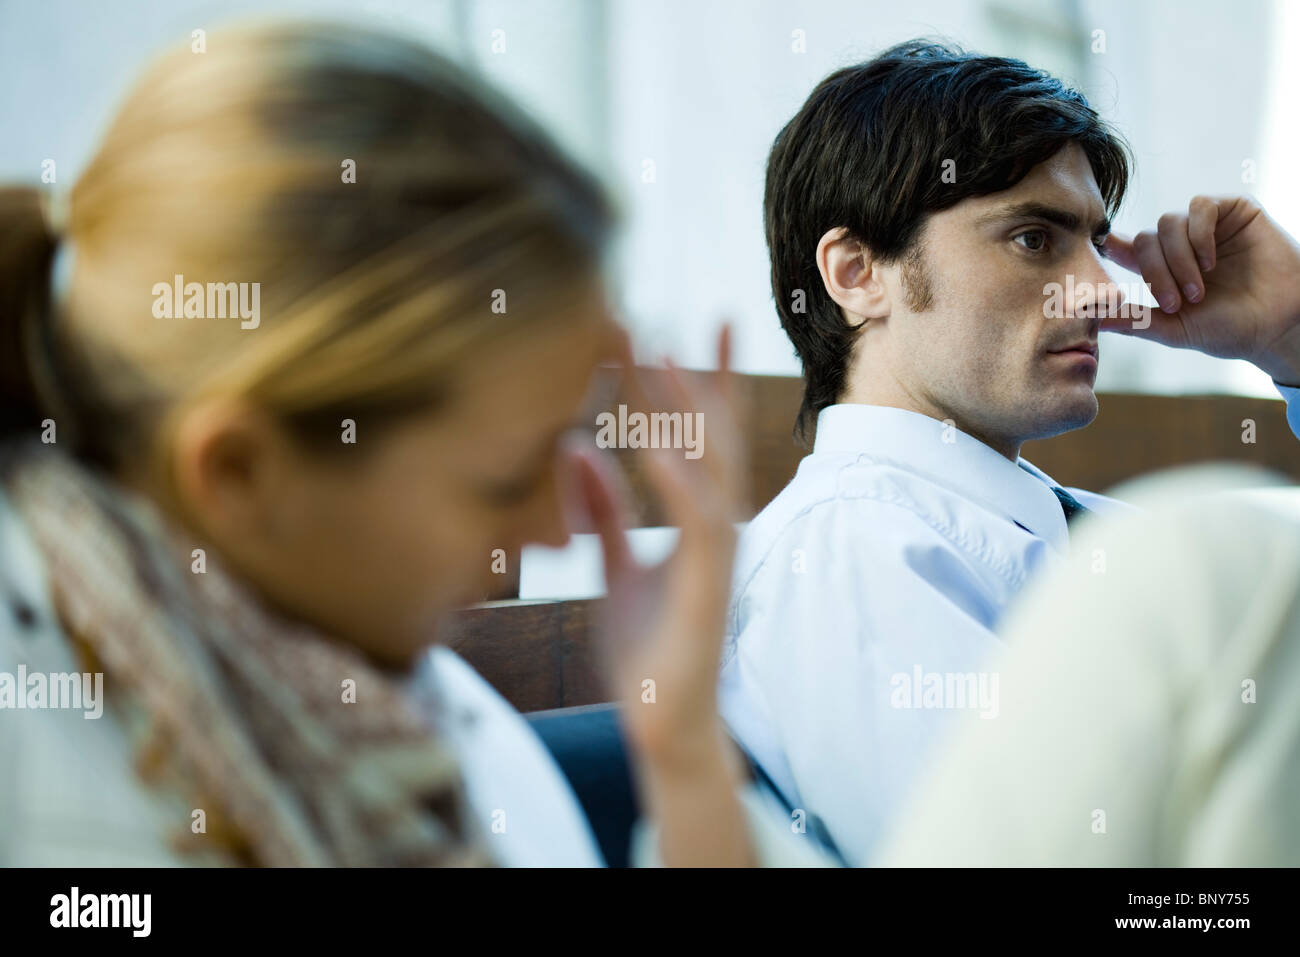 Couple experiencing relationship difficulties Stock Photo